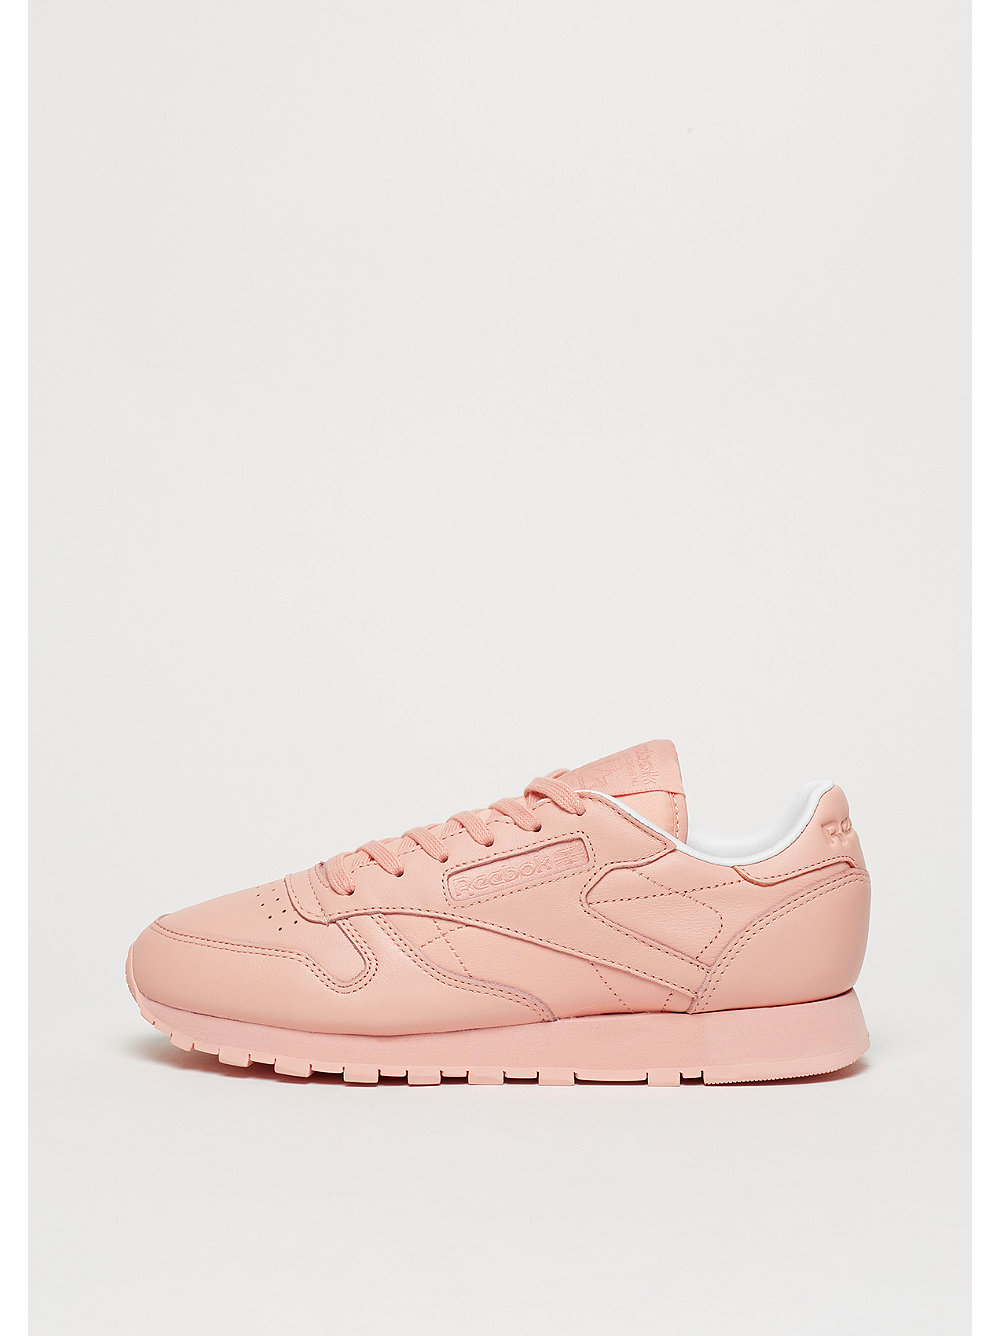 Schuh Classic Leather Pastels patina pink/white